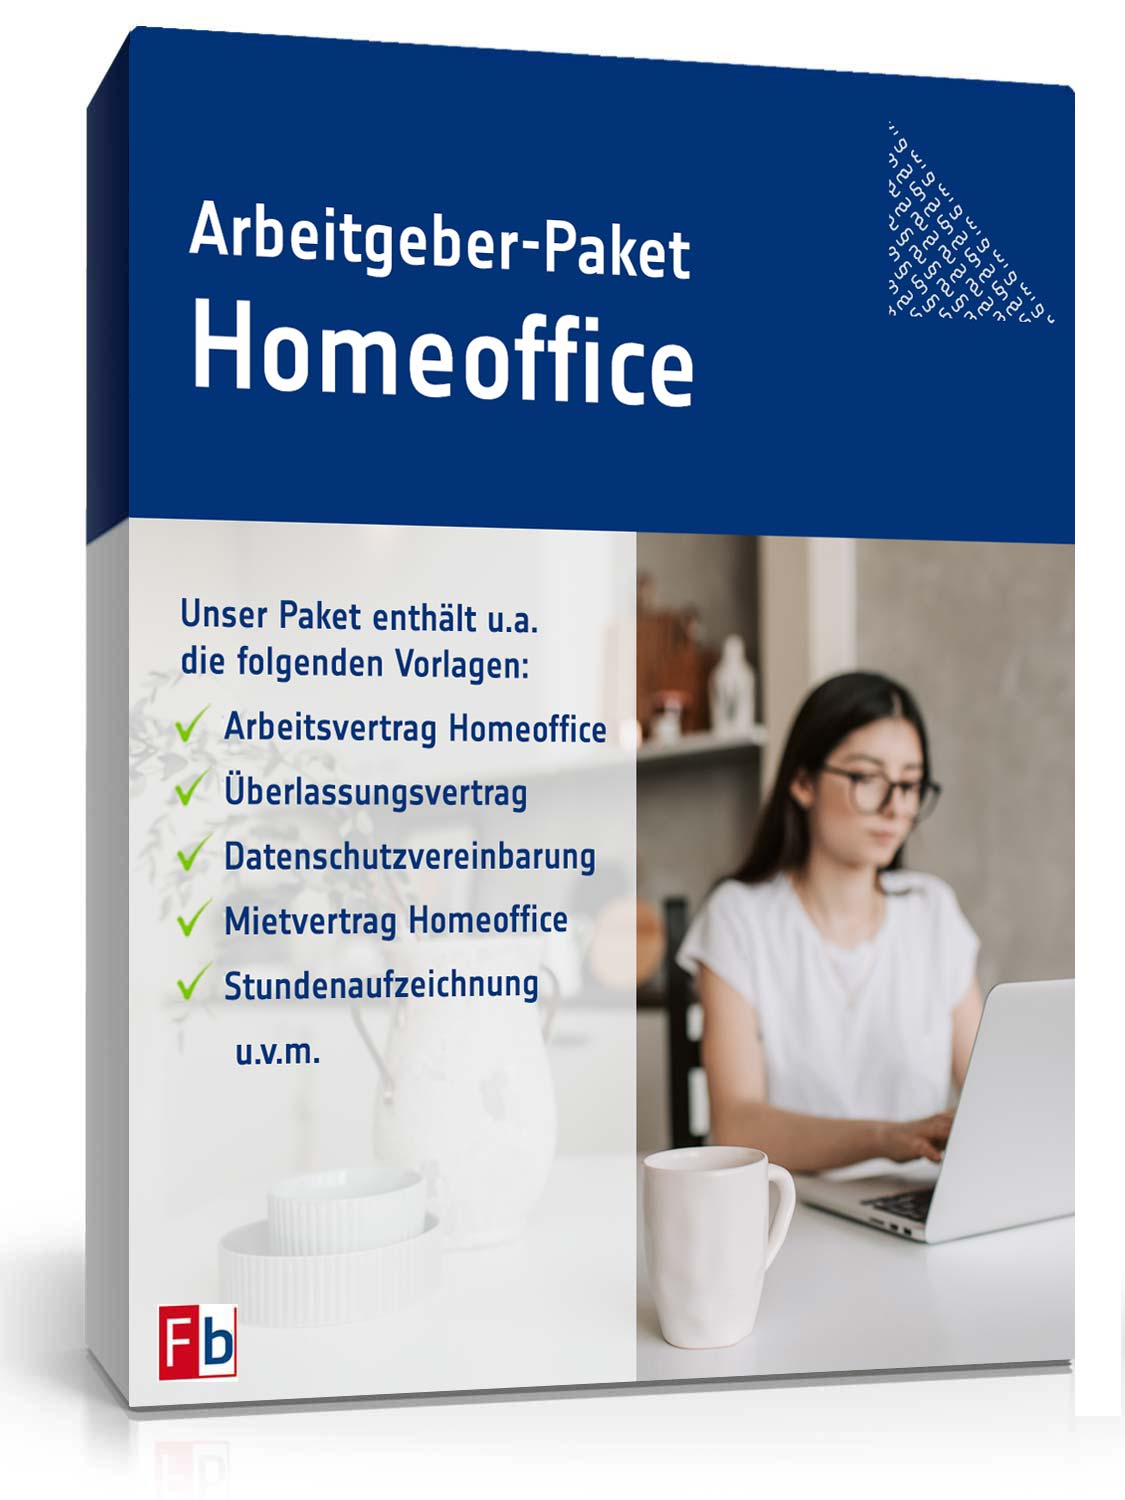 Arbeitgeber-Paket Homeoffice Dokument zum Download